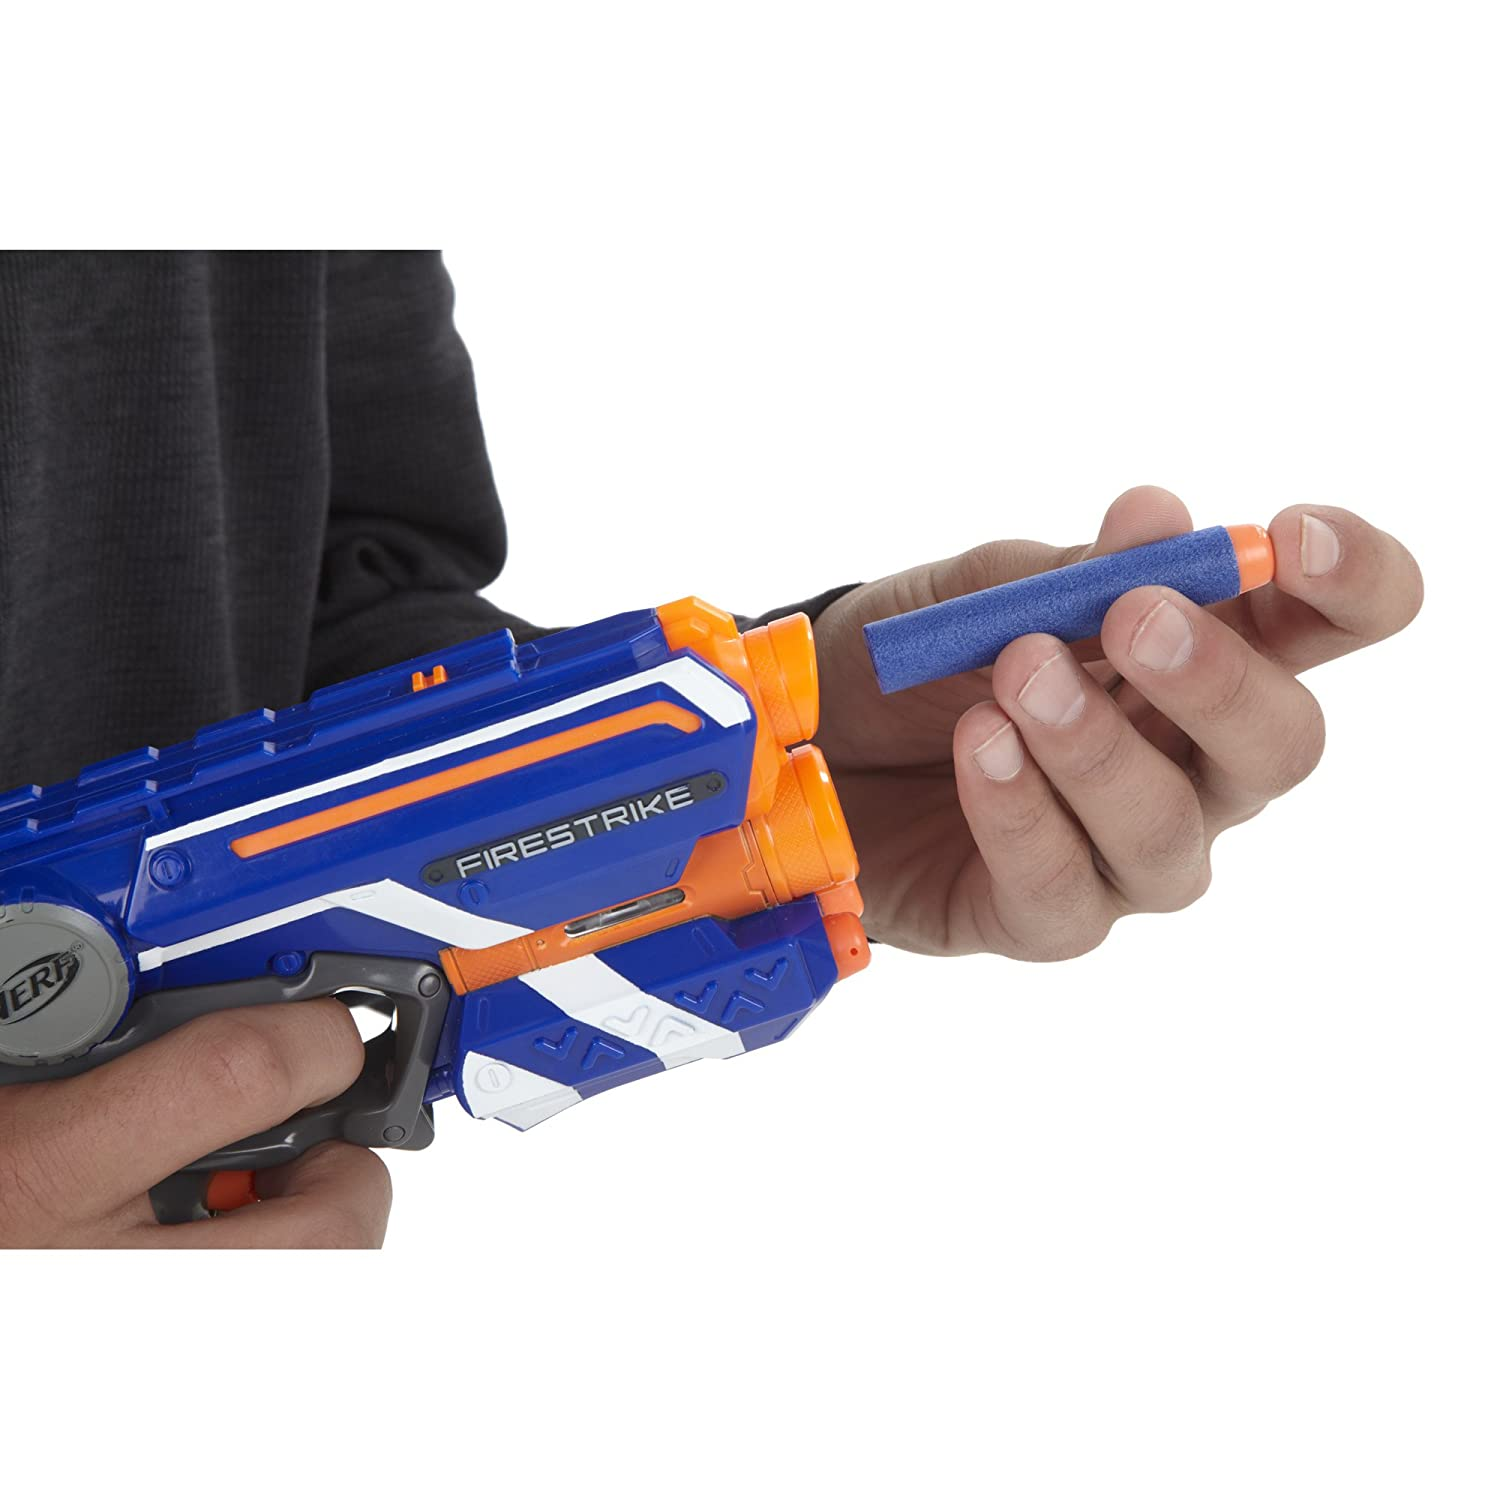 Nerf N-Strike Elite Firestrike (Colors May Vary), Blasters & Foam Play -  Amazon Canada